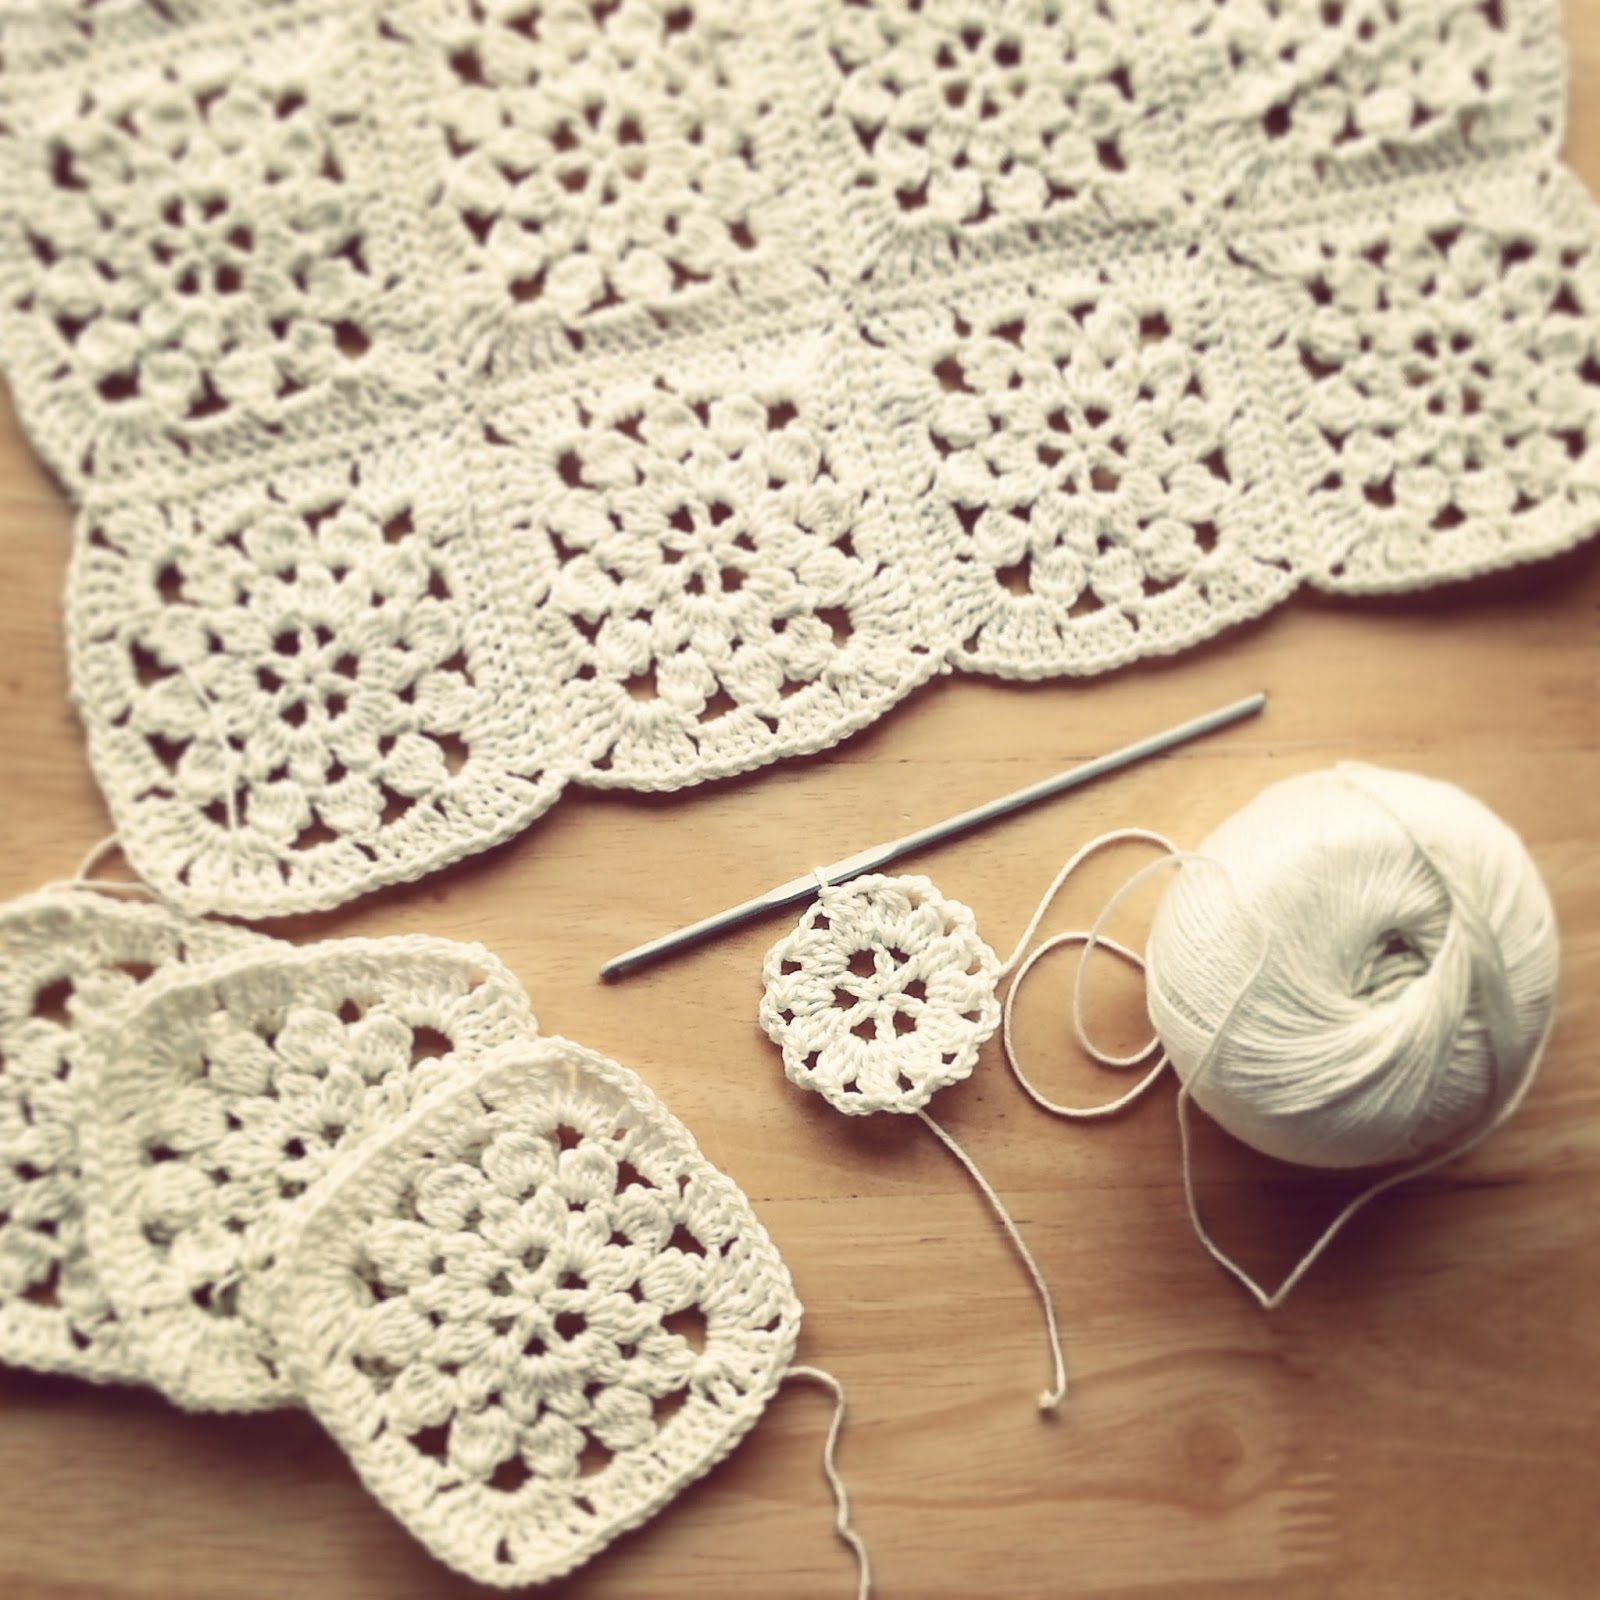 Lavender and Wild Rose: Monochrome and colour crochet